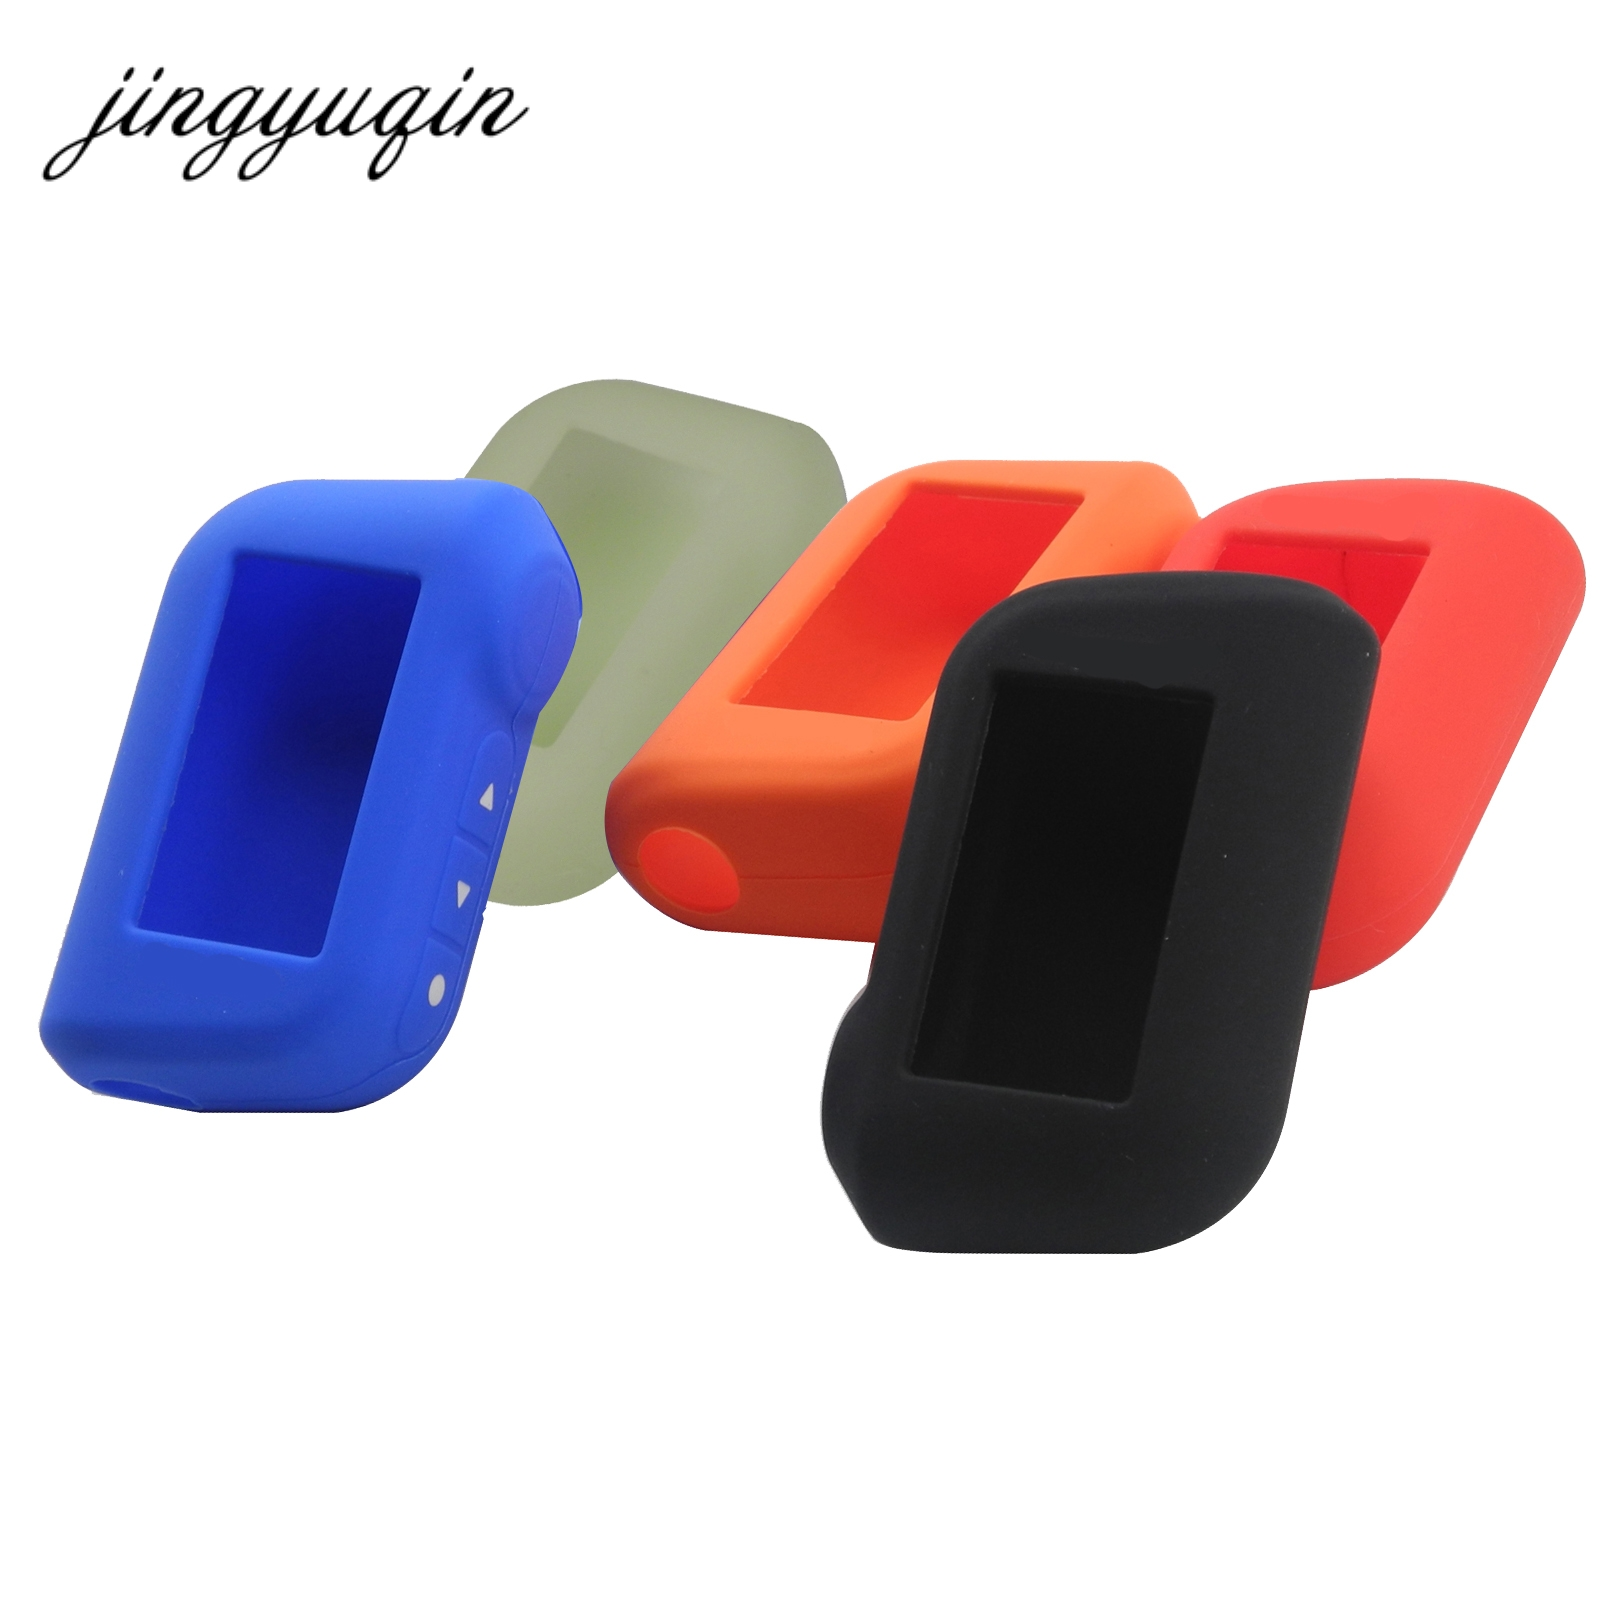 jingyuqin A93 A96 Keychain Silicone Cover Key Case for Starline A93 Two Way Car Alarm Remote Controller A63 LCD Transmitter a93 a96 keychain silicone cover key case for starline a93 two way car alarm remote controller a63 lcd transmitter